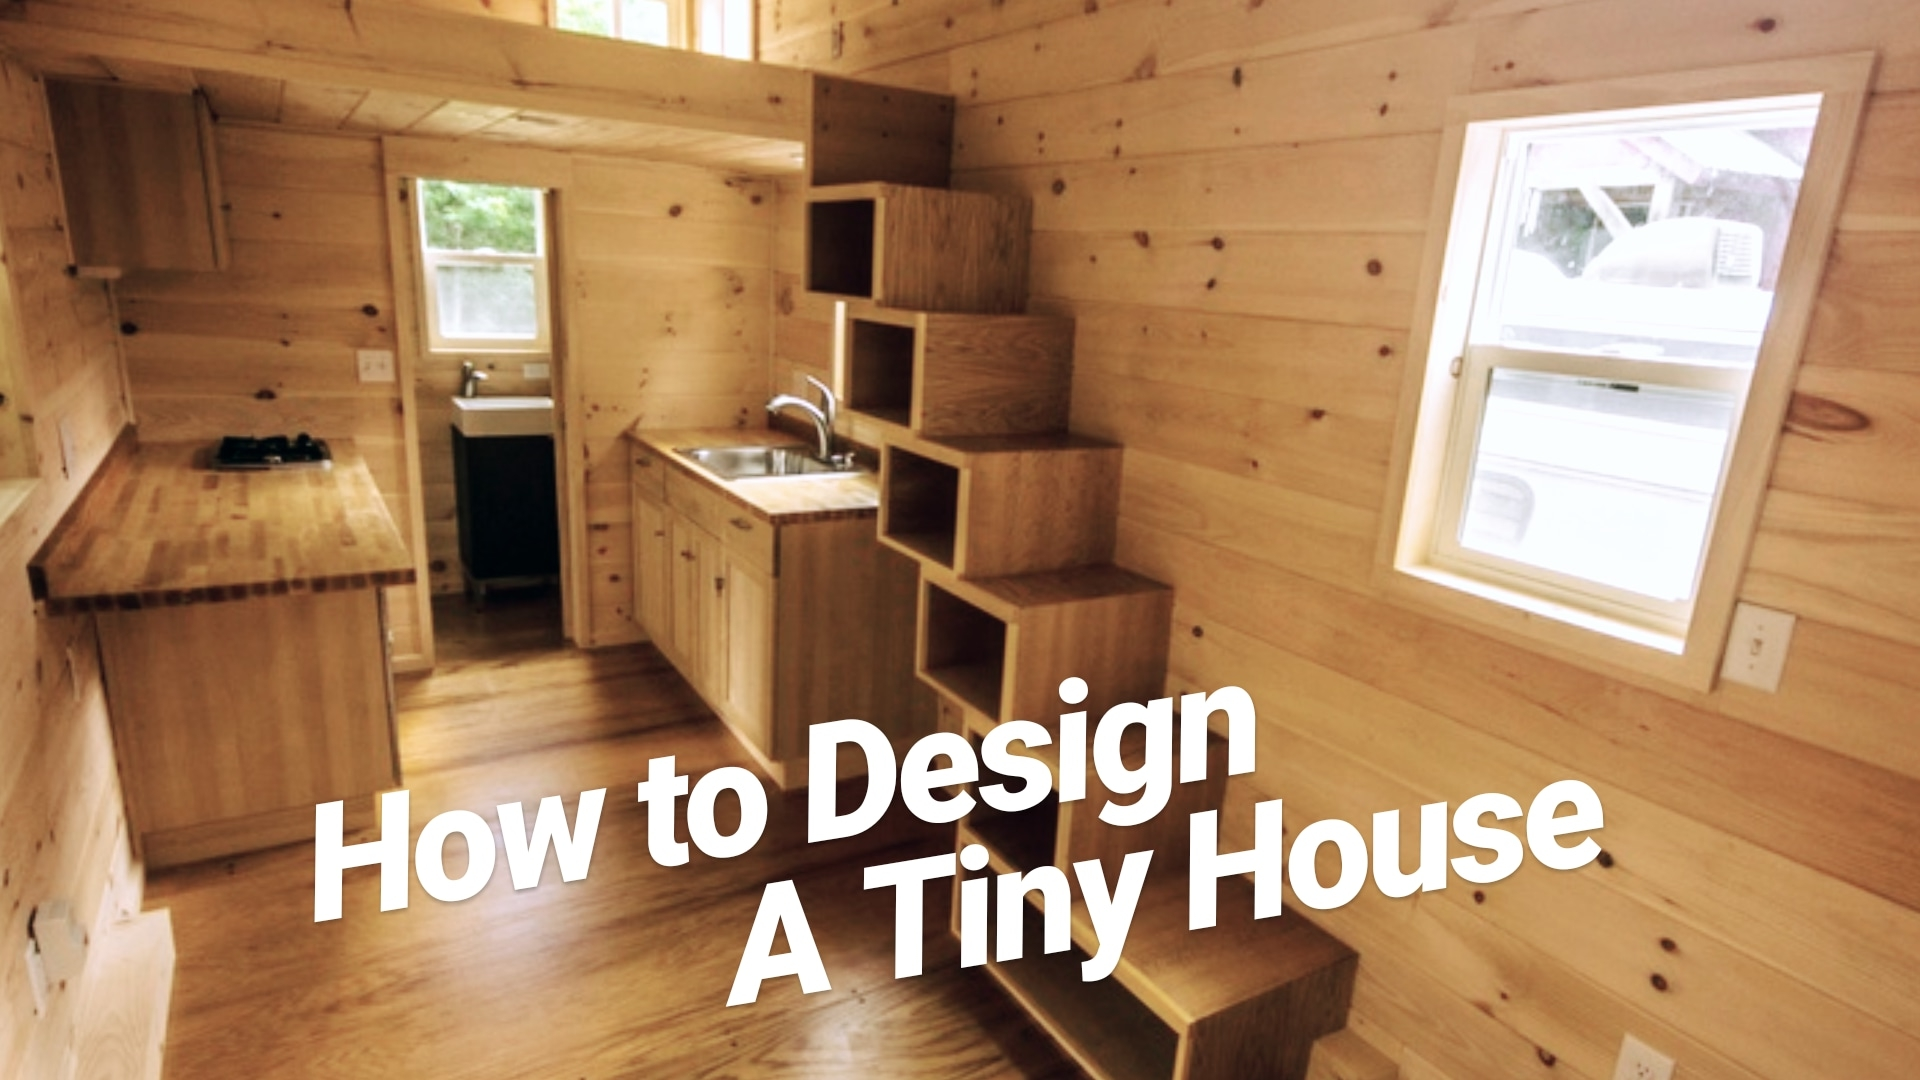 how-to-design-a-tiny-house.jpg